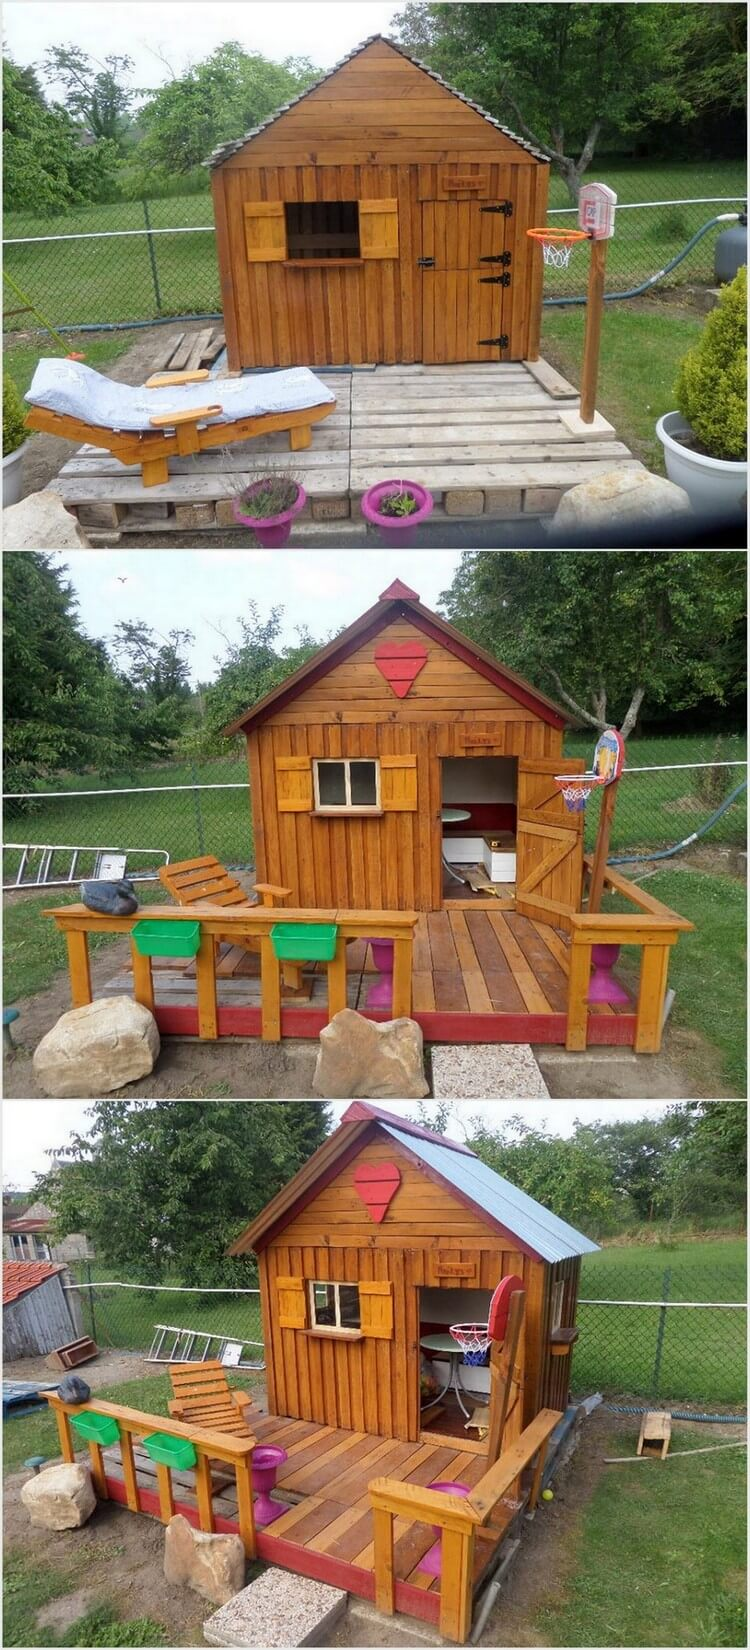 Wood Pallet House 35 Easiest Plans For Wood Pallet Reusing Pallet Wood Projects